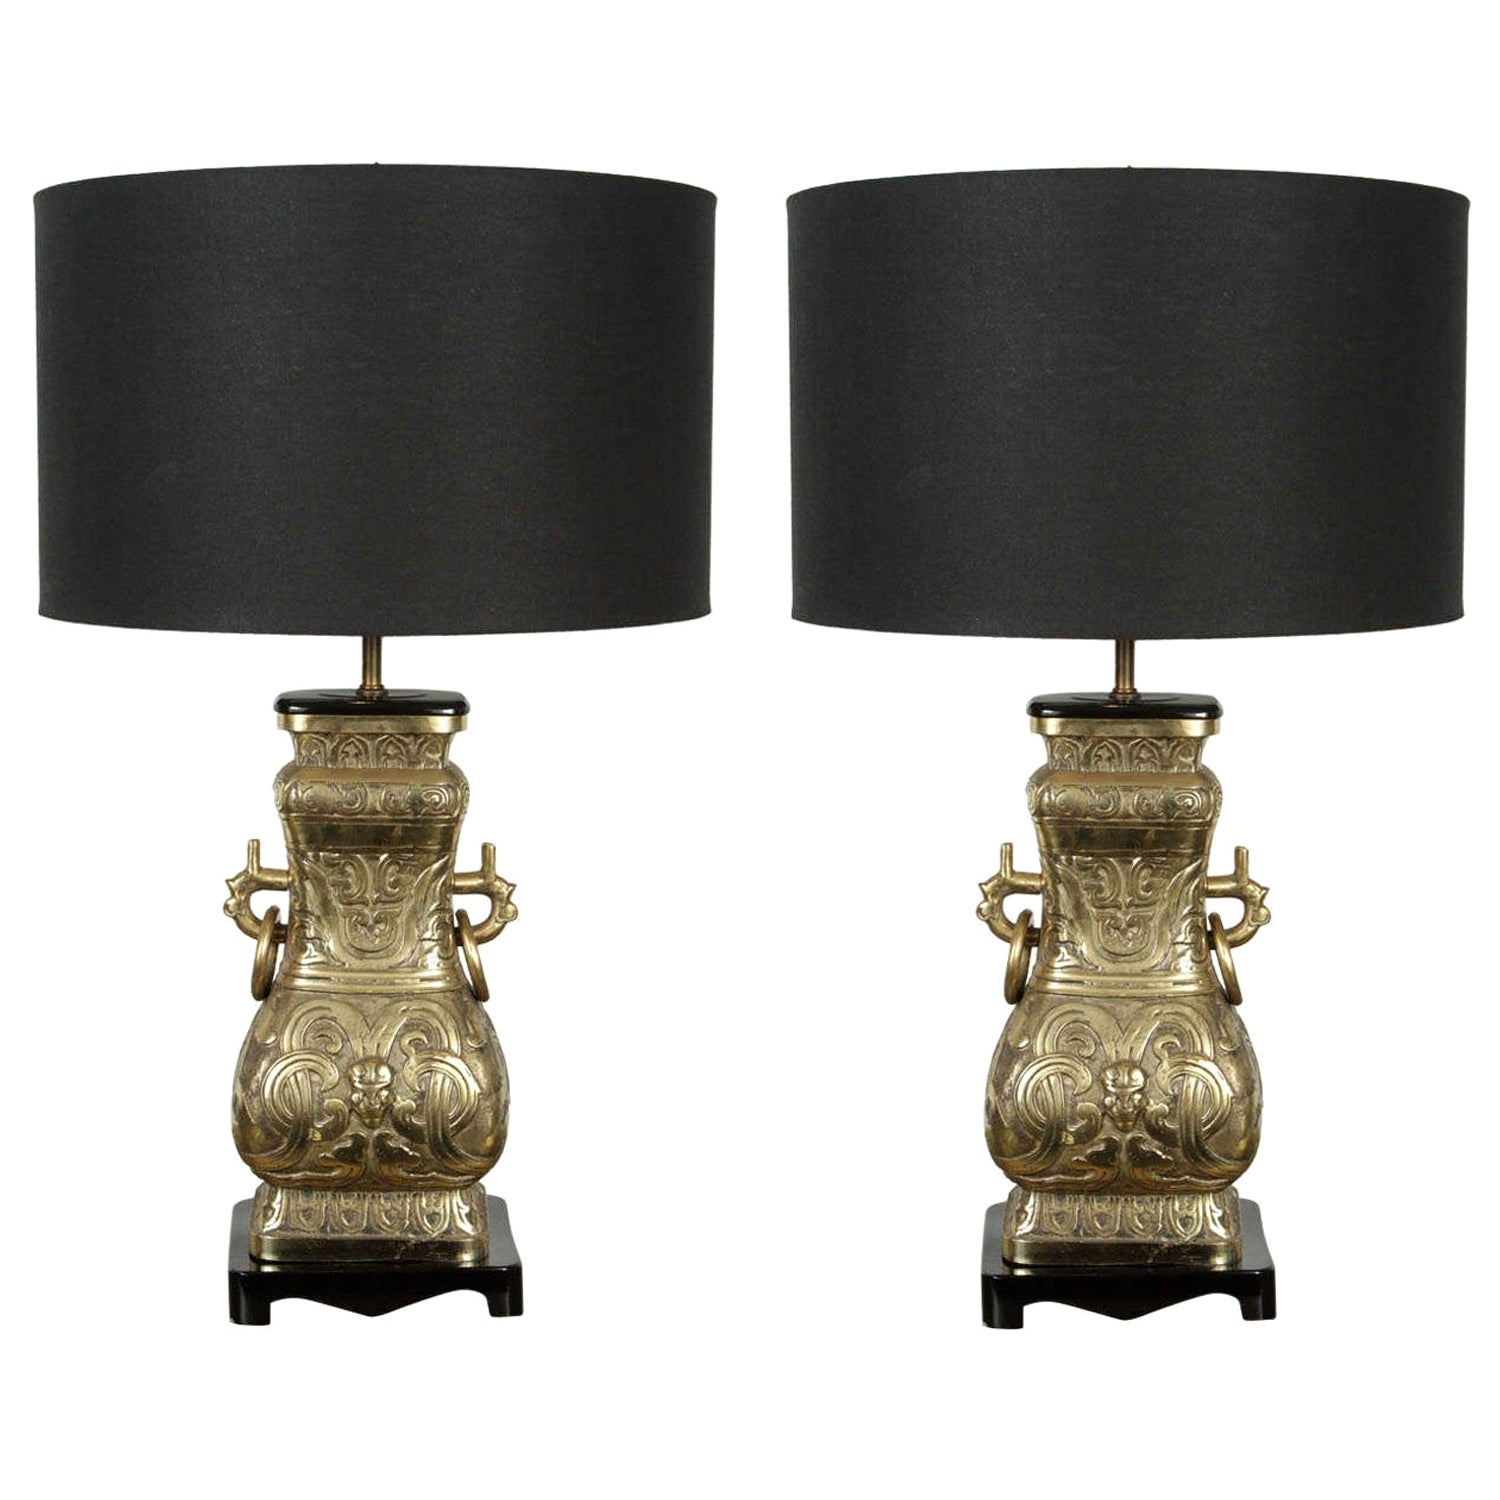 Pair of Chinese Archaistic Brass Table Lamps, 1940s